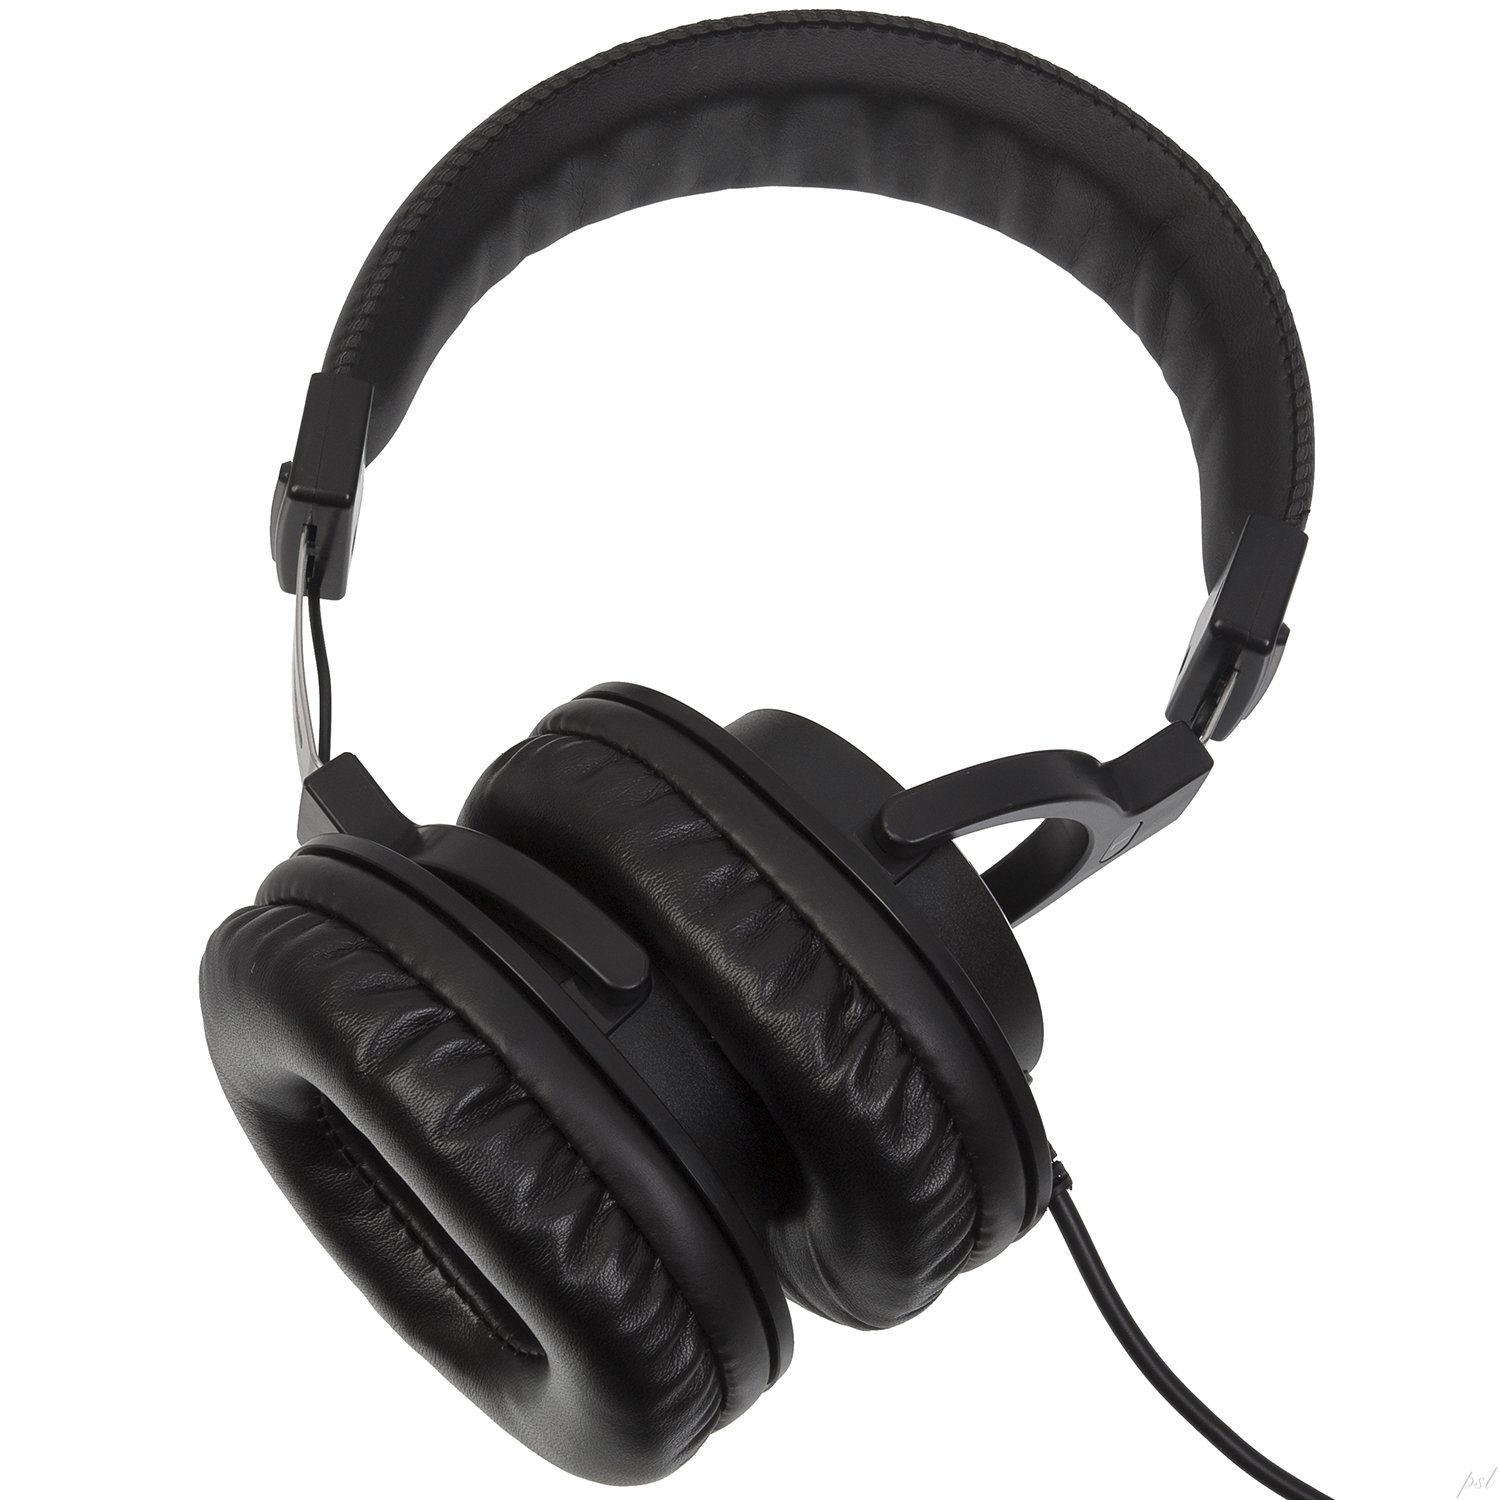 LyxPro HAS-10 Closed Back Over-Ear Professional Studio Monitor & Mixing Headphones,Music Listening,Piano,Sound Isolation, Lightweight by LyxPro (Image #5)